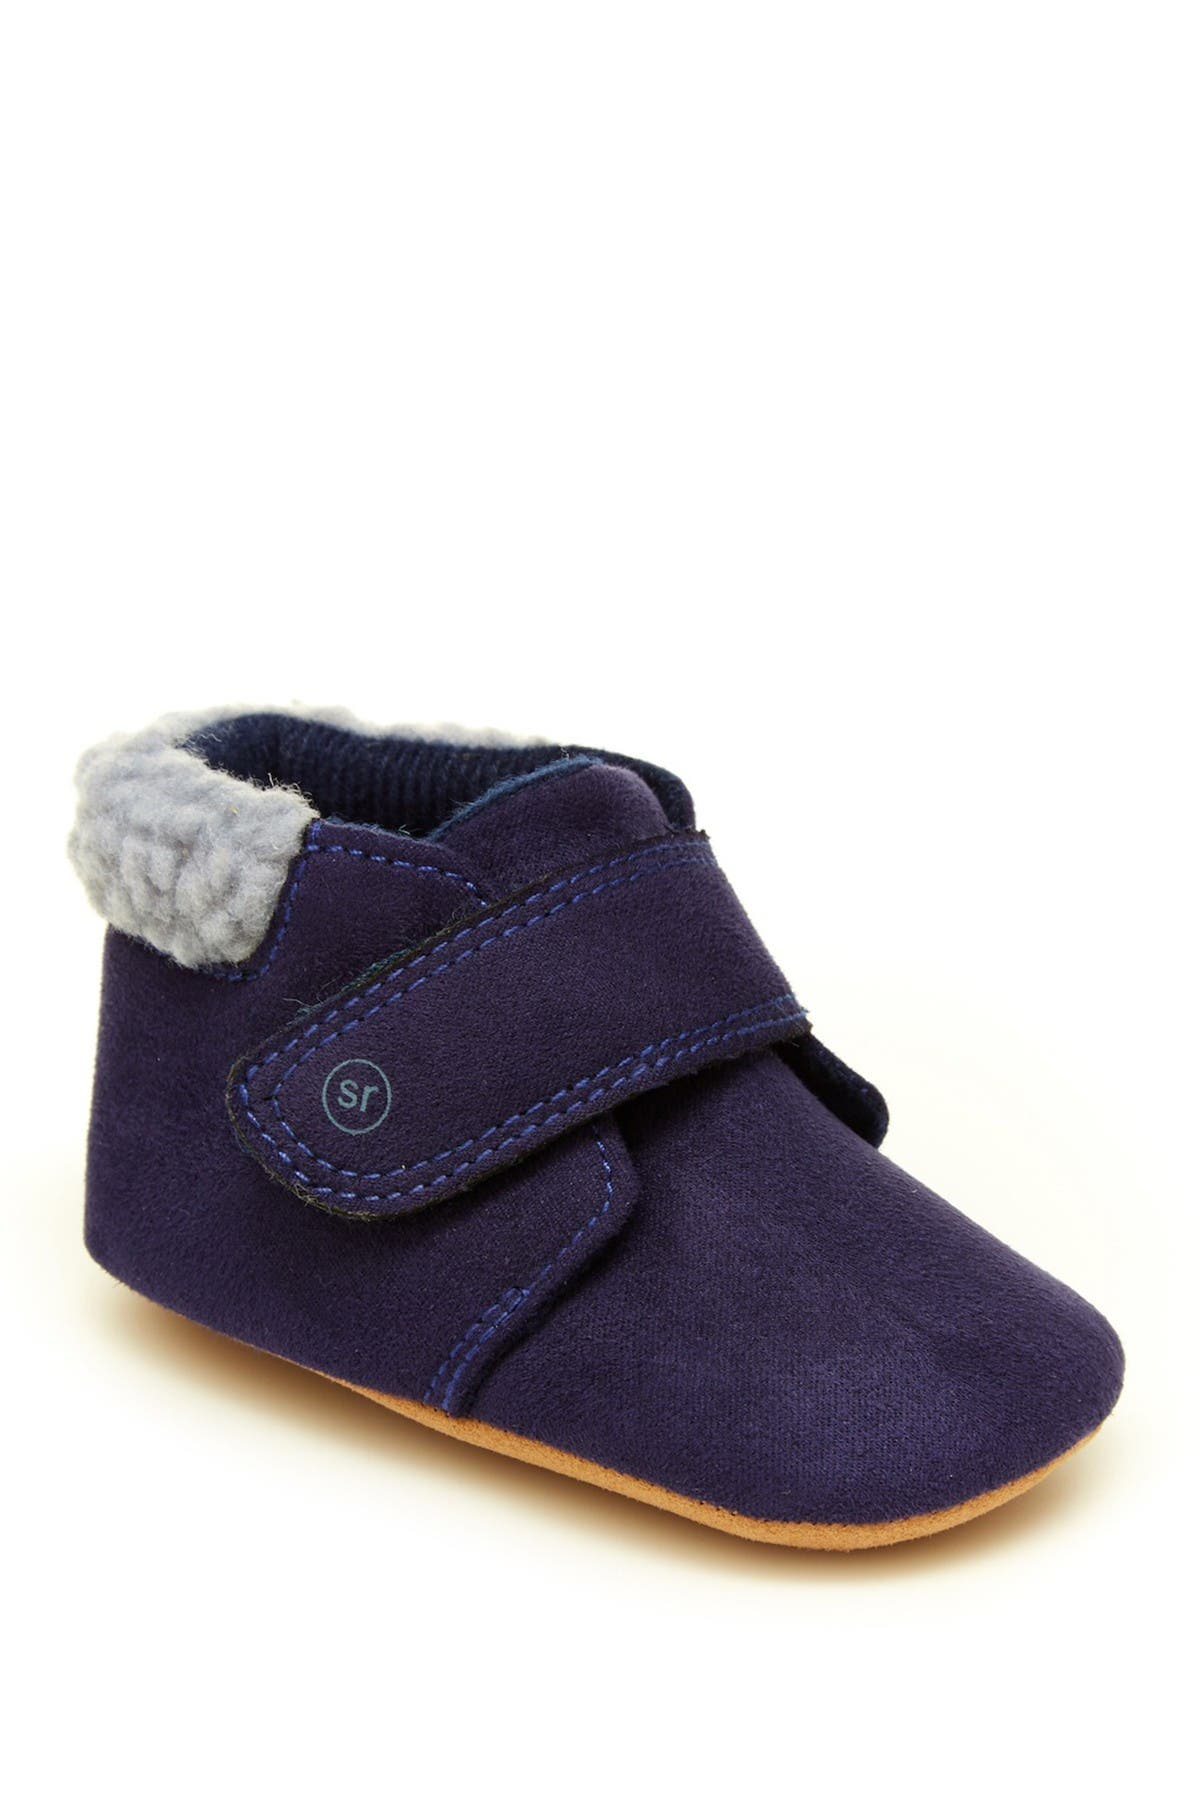 Image of Stride Rite Miles Crib Shoe